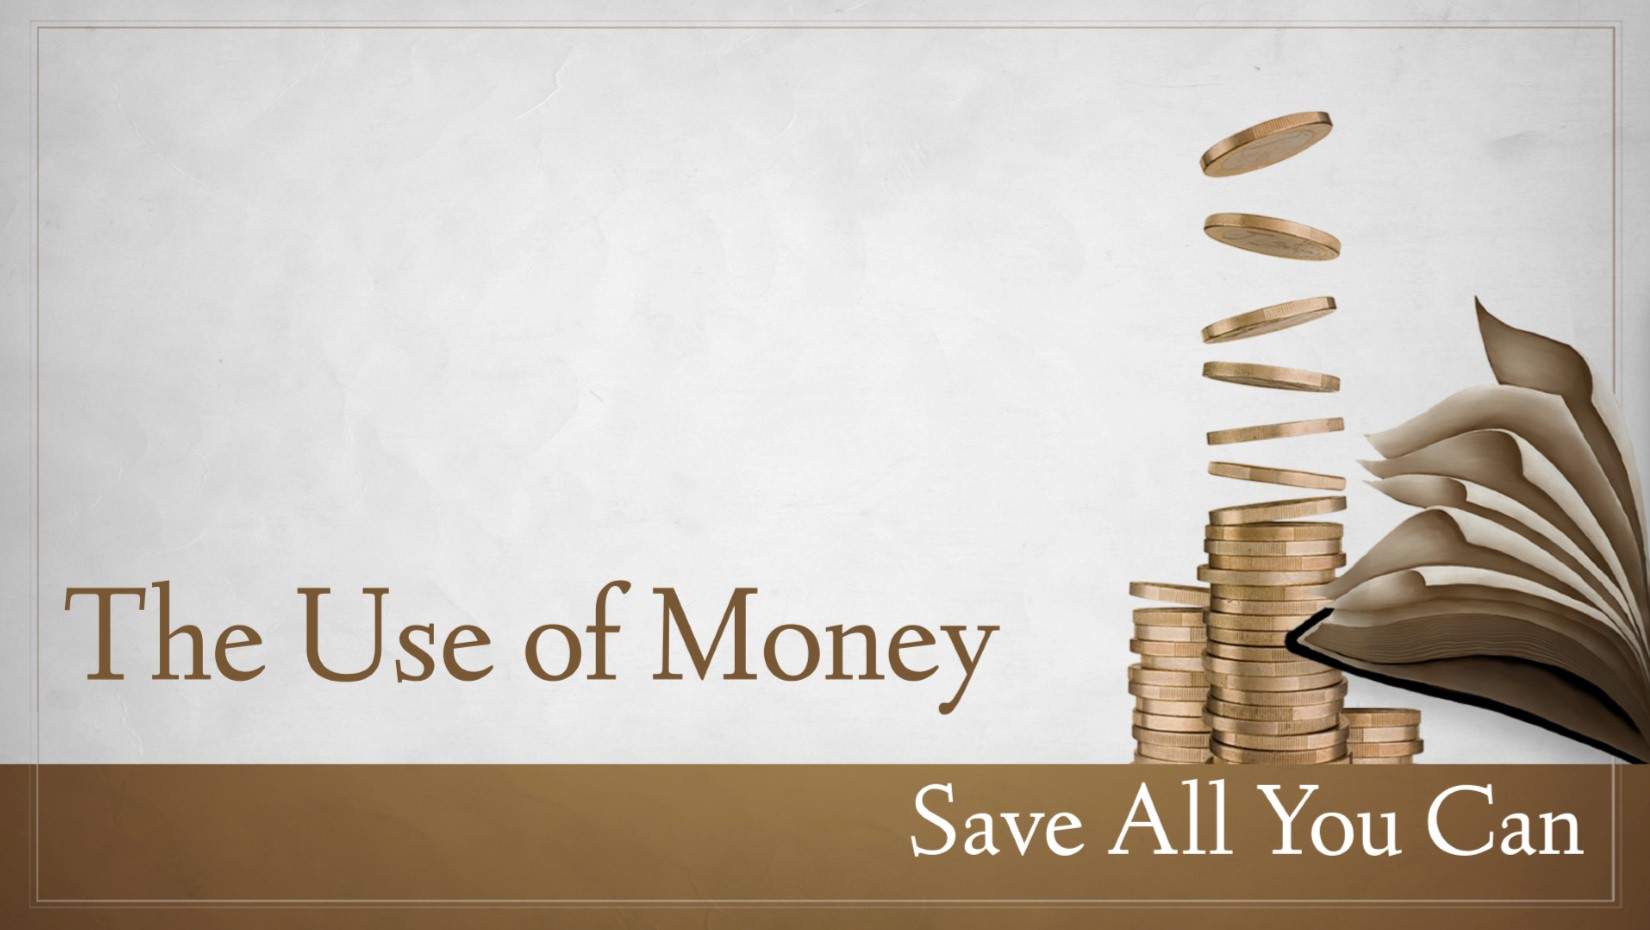 11.08.2020 The Use of Money: Save All You Can Philippians 4:10 – 20